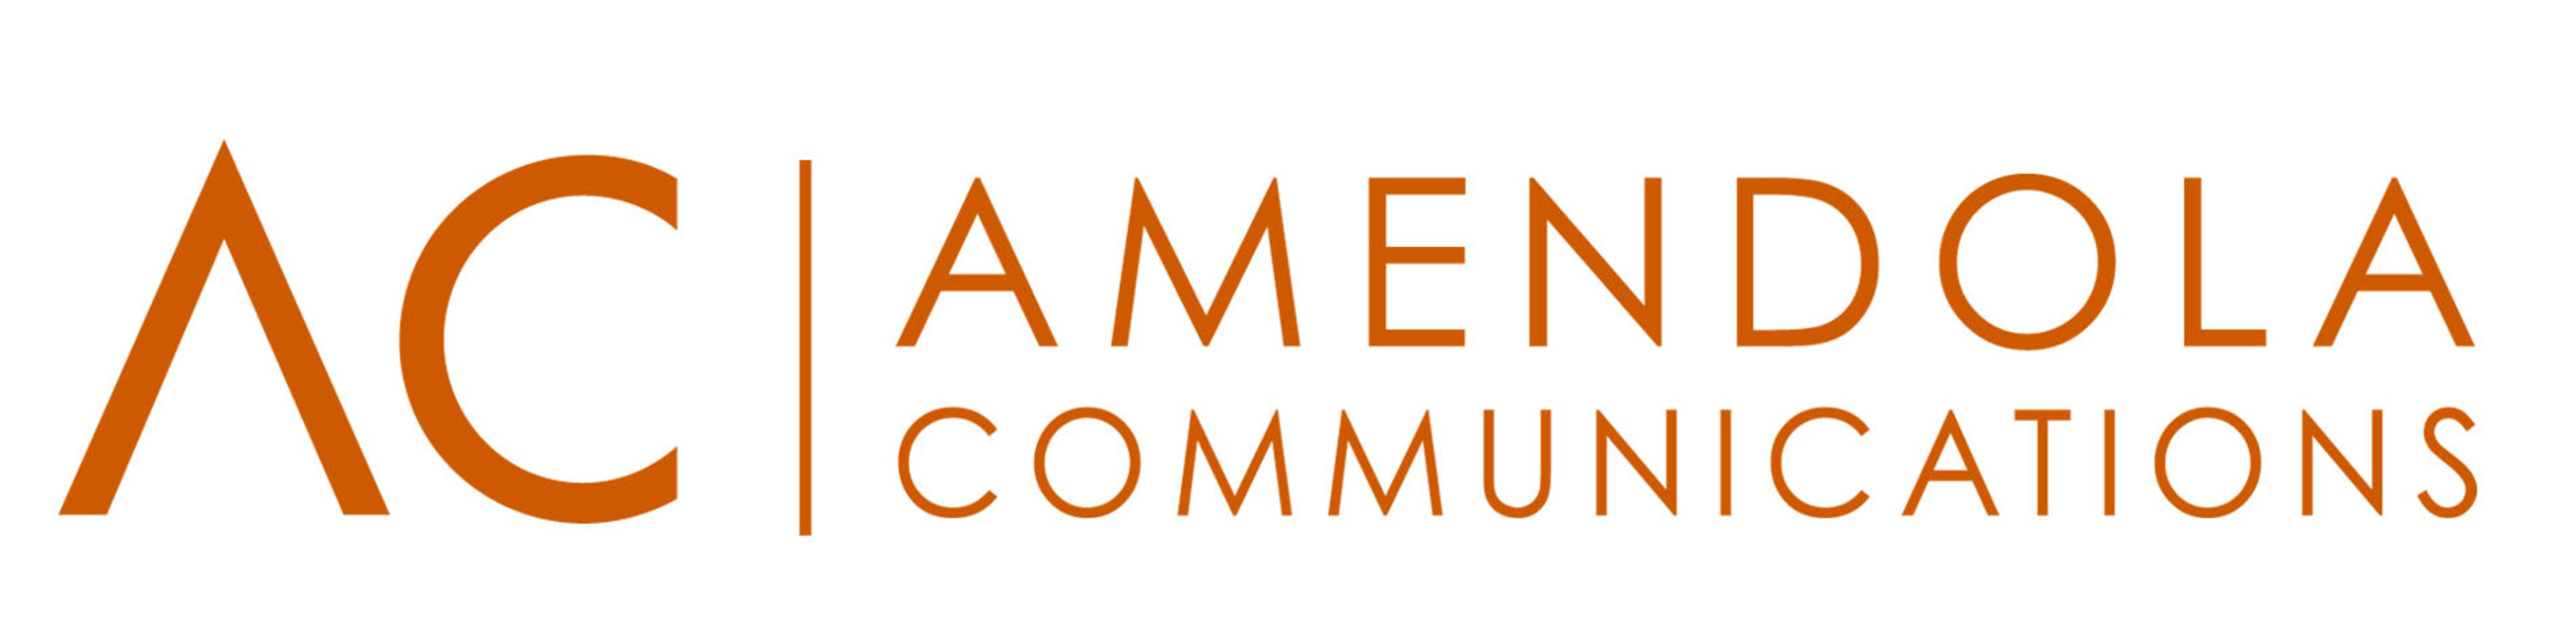 Amendola Communications is a full-service, national public relations, social media and marketing communications firm serving the healthcare, healthcare IT, pharmaceutical and high tech industries. (PRNewsFoto/Amendola Communications)